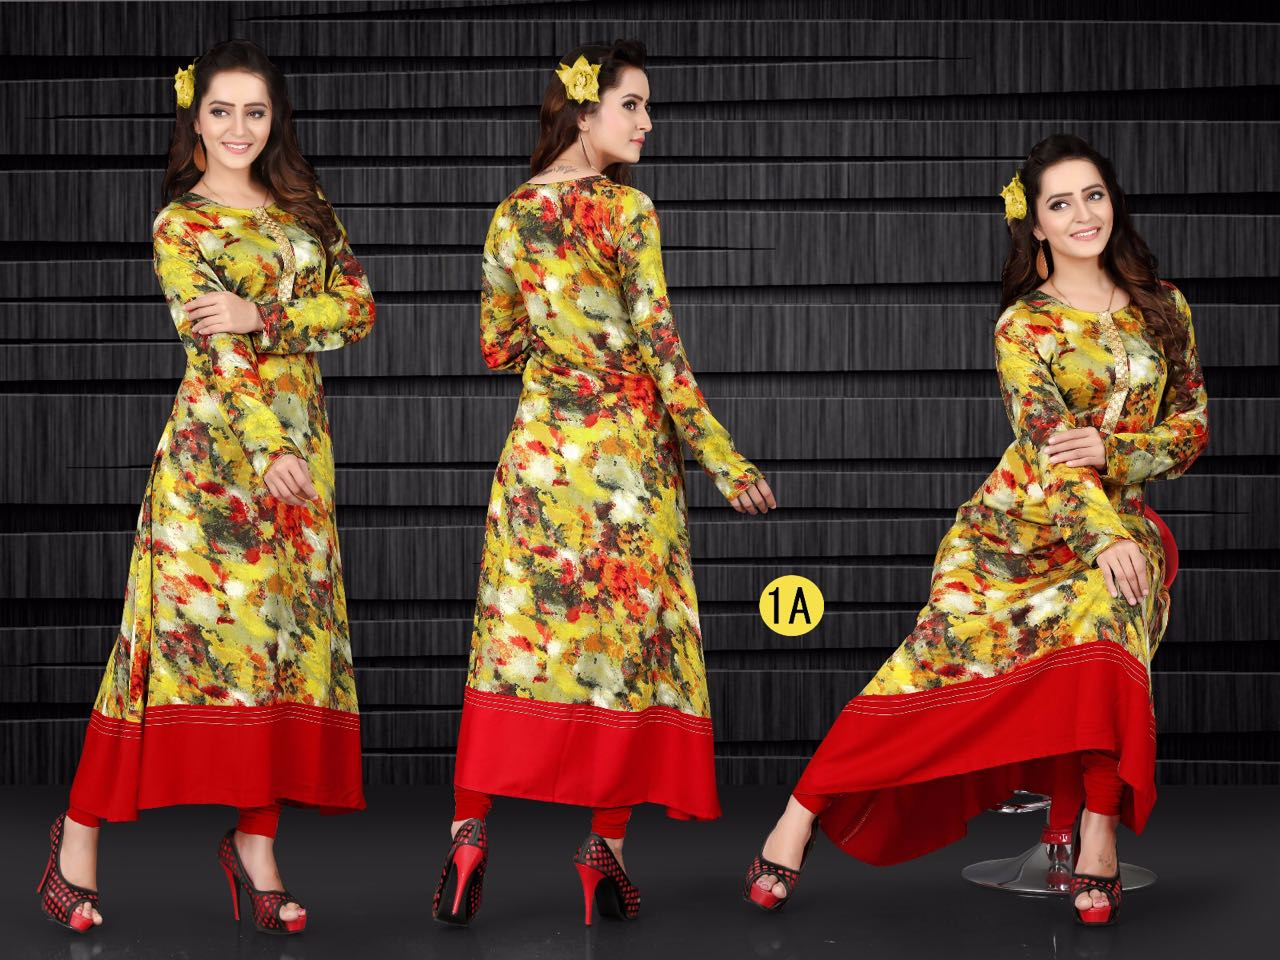 Zia 2 – Amazingly Stylish Printed Viscose Rayon Long Kurtis